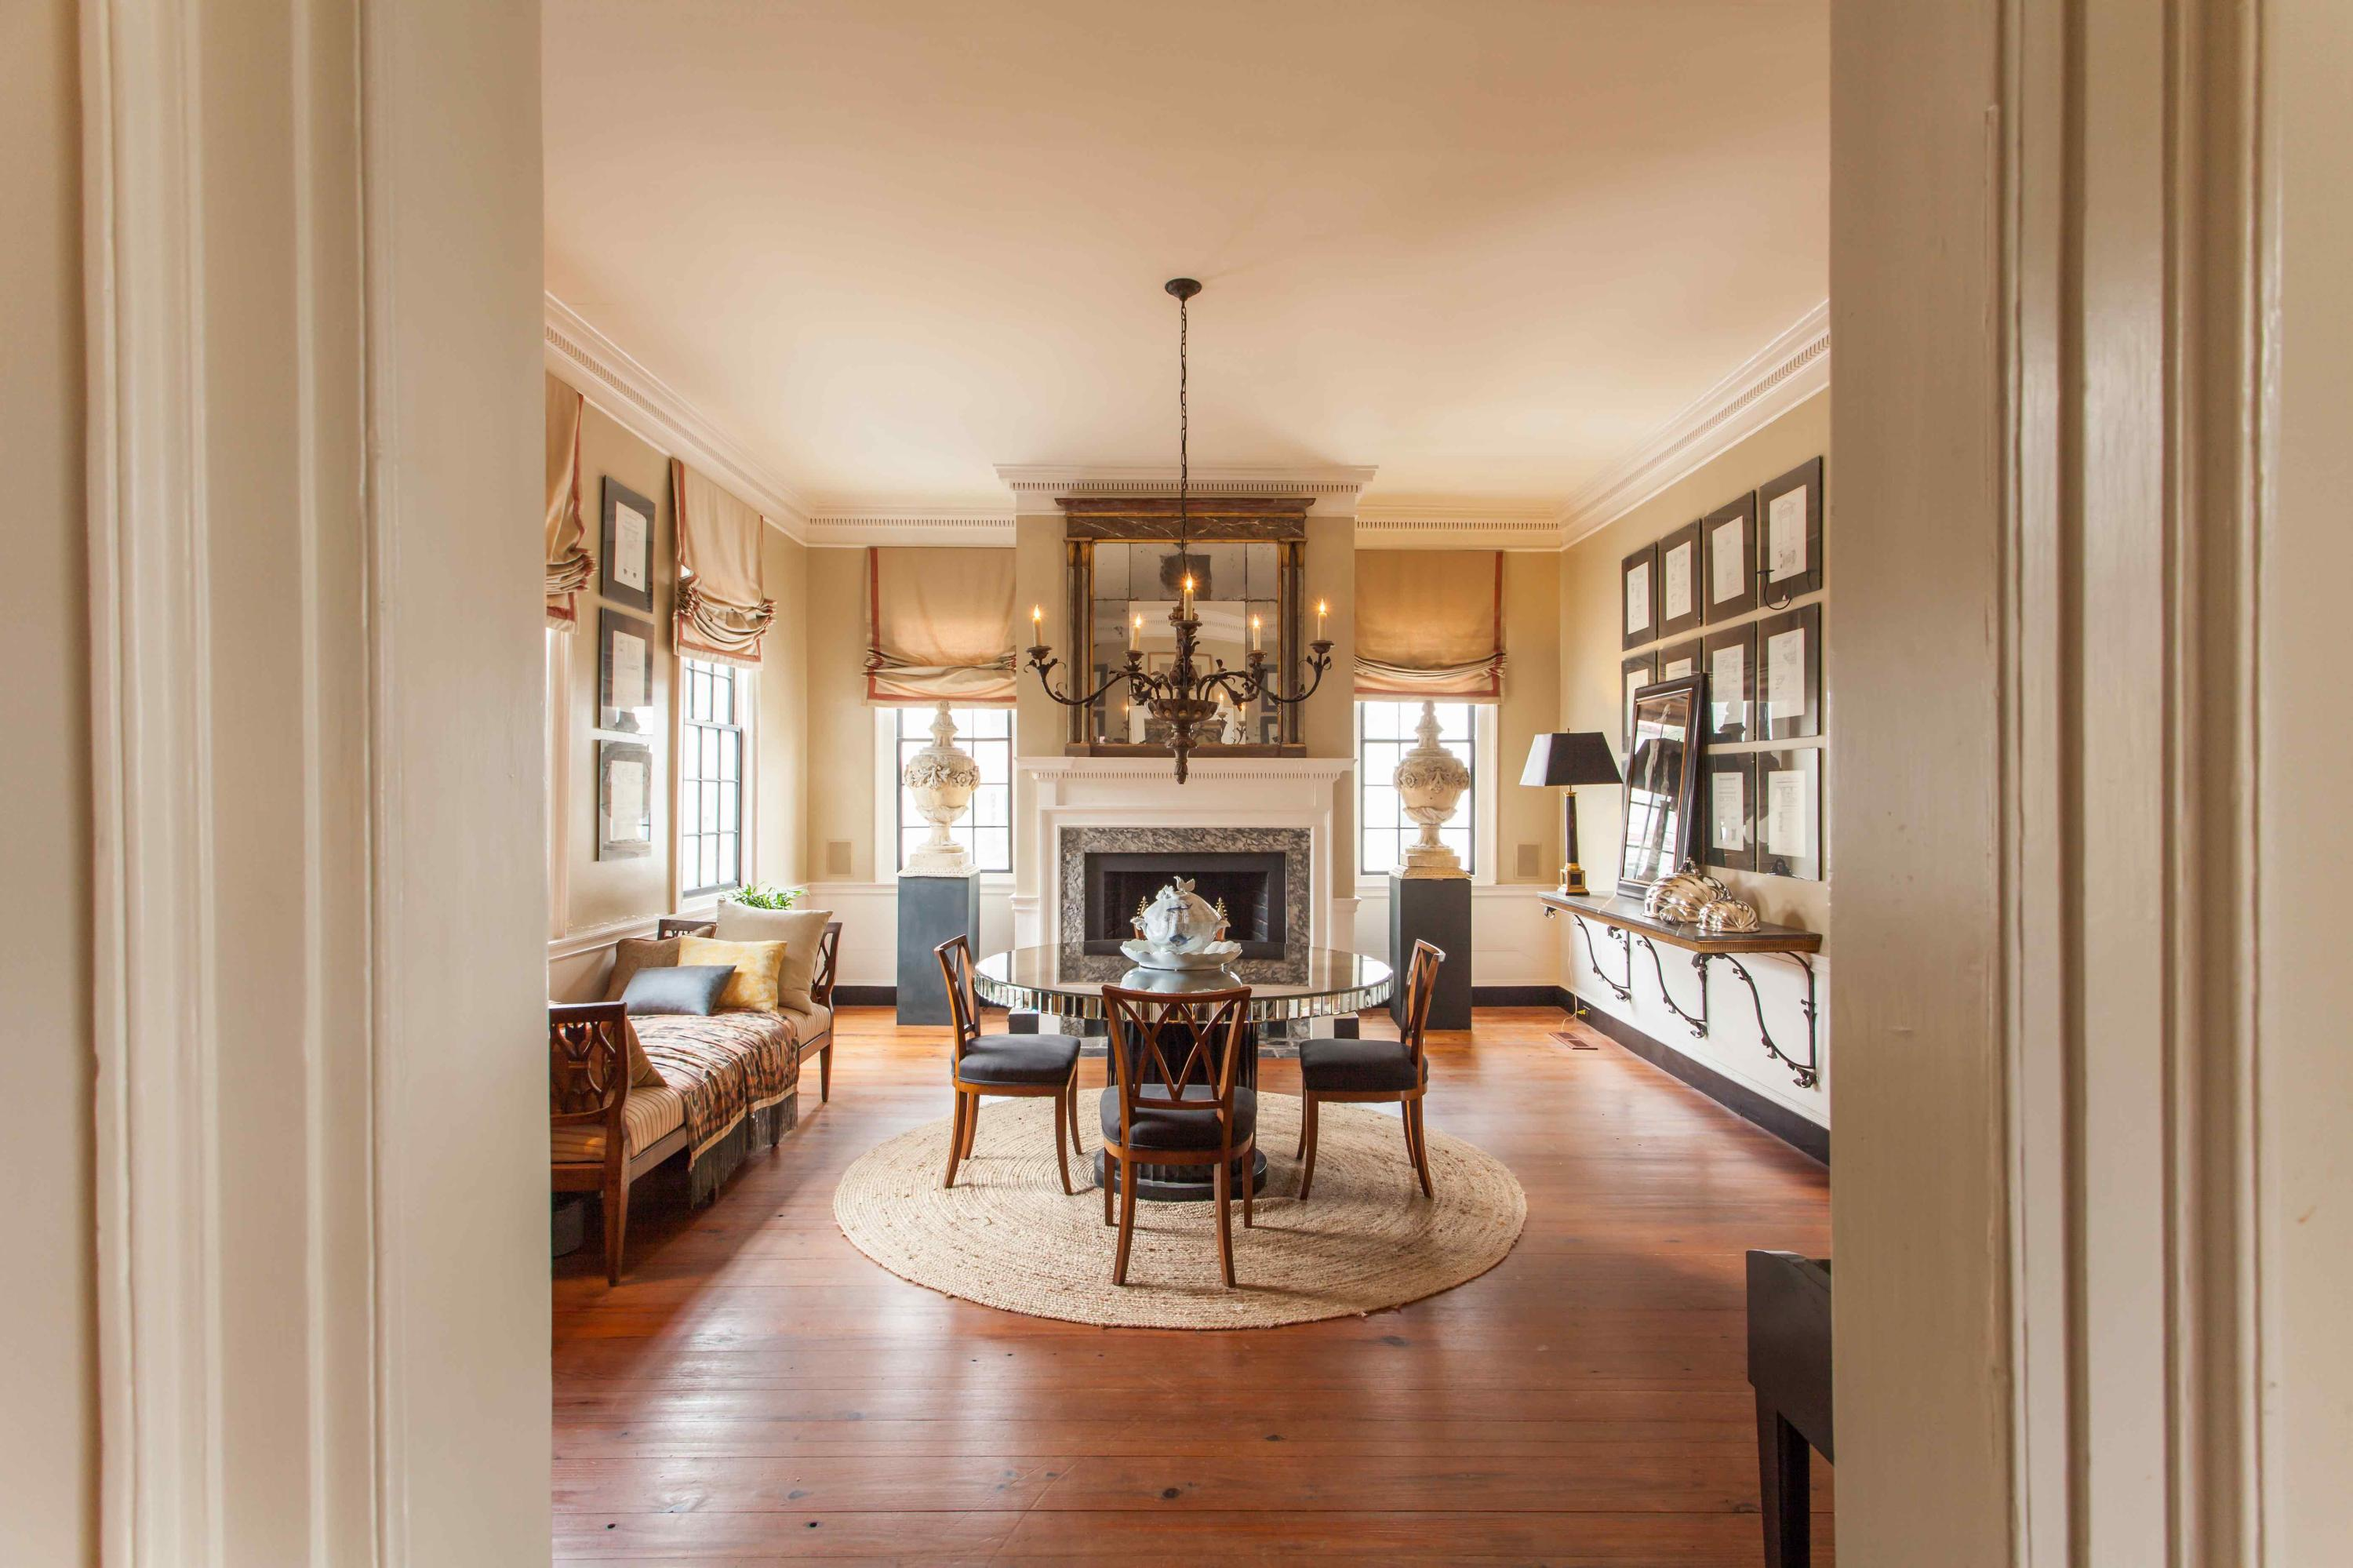 South of Broad Homes For Sale - 58 South Battery, Charleston, SC - 45